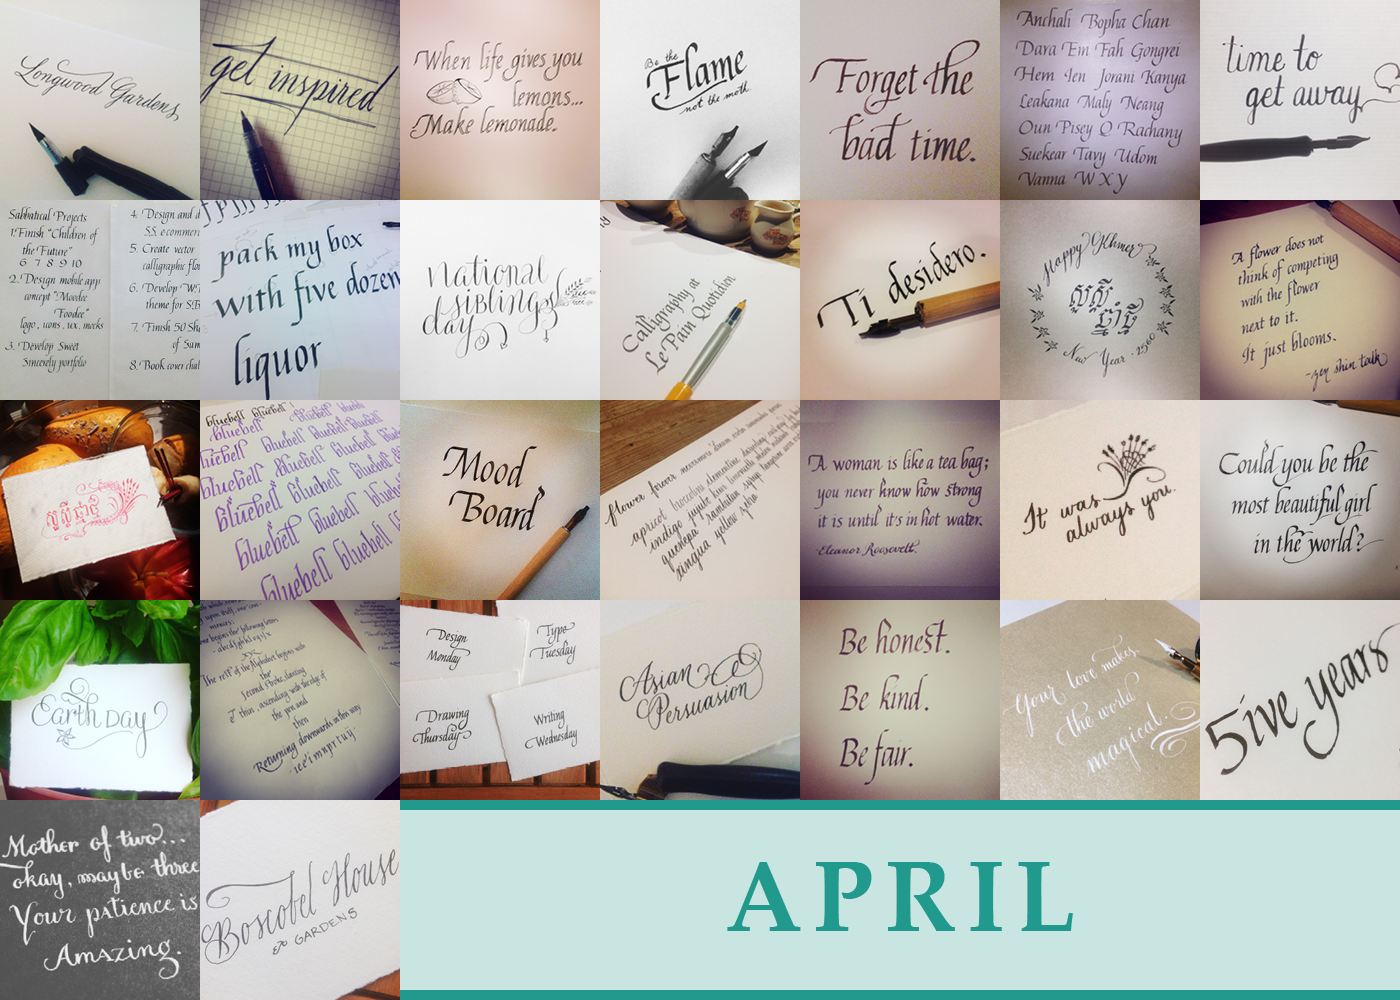 365 Days of Calligraphy: April